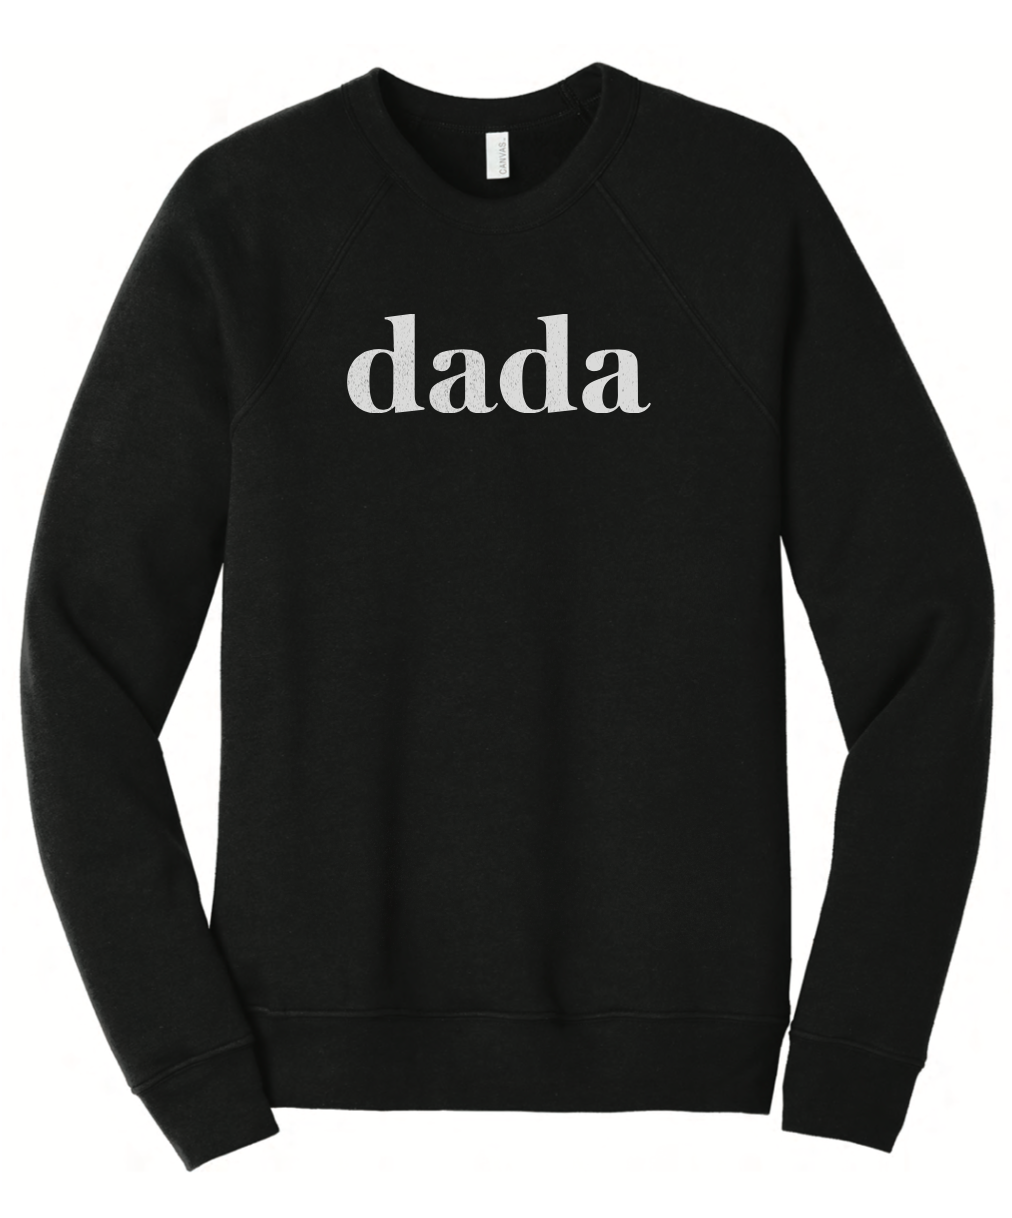 Dada Sweatshirt - Black